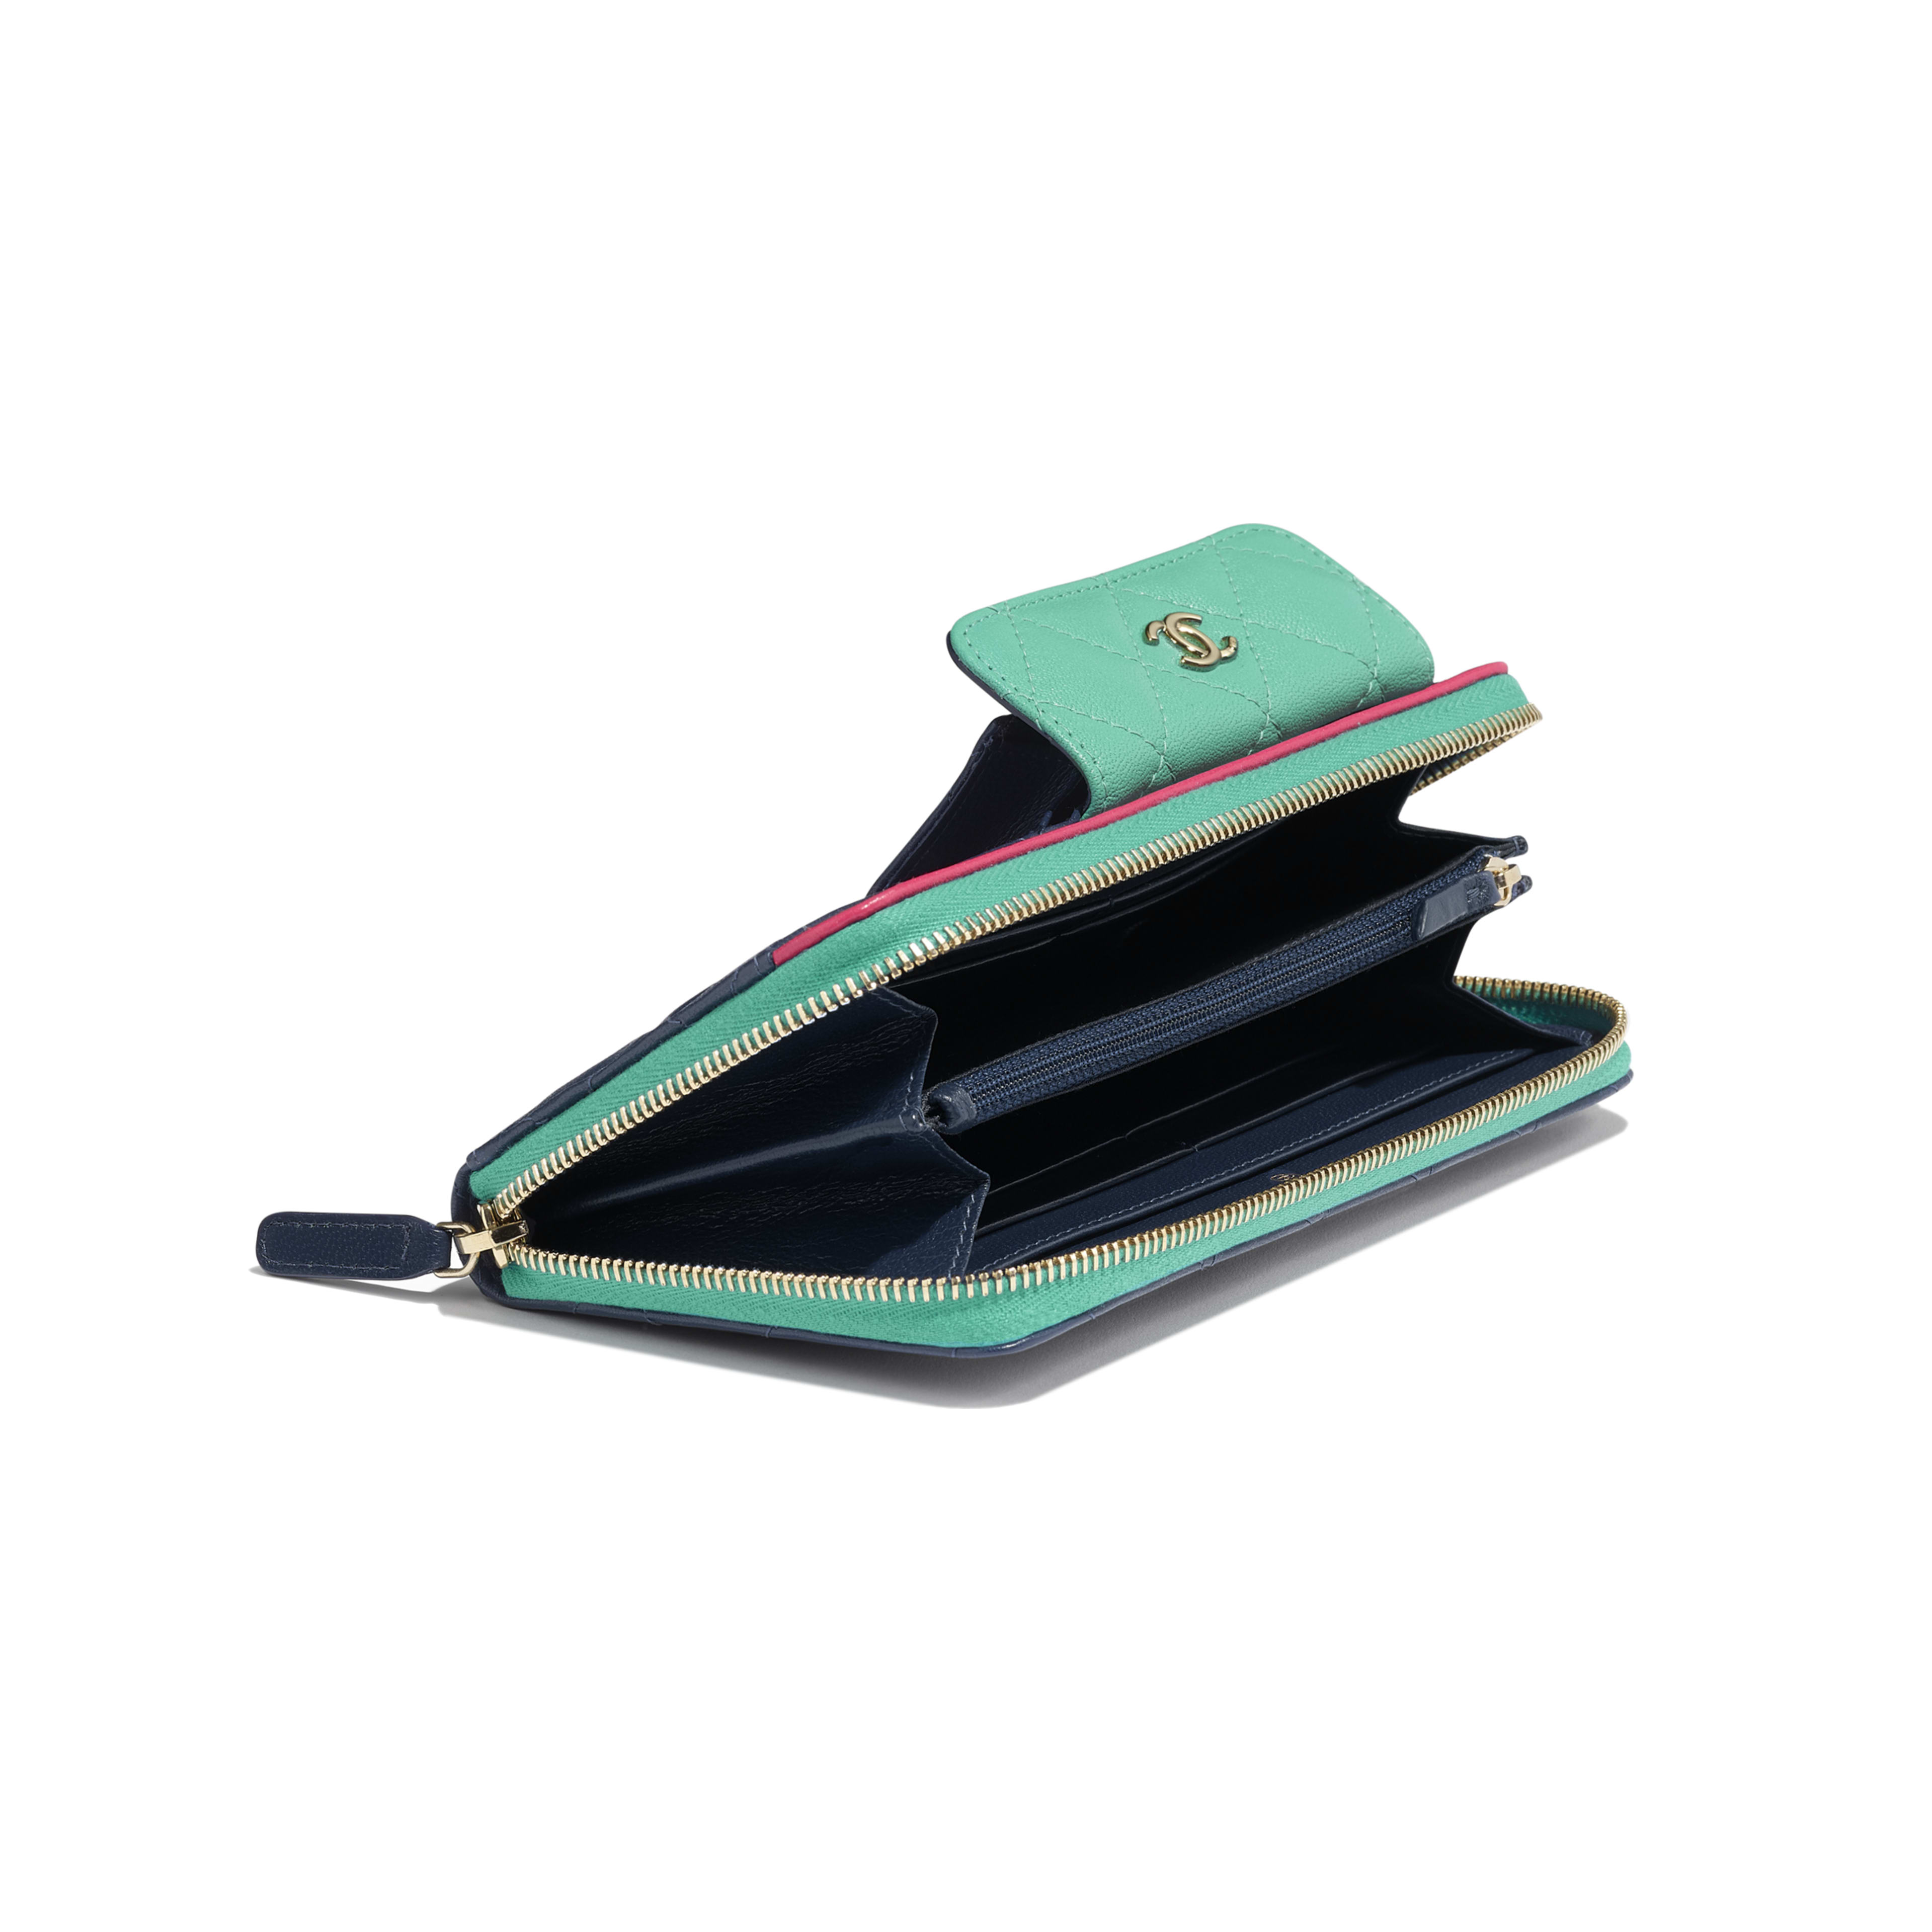 Long Zipped Wallet - Navy Blue, Green & Dark Pink - Goatskin & Gold-Tone Metal - Extra view - see full sized version